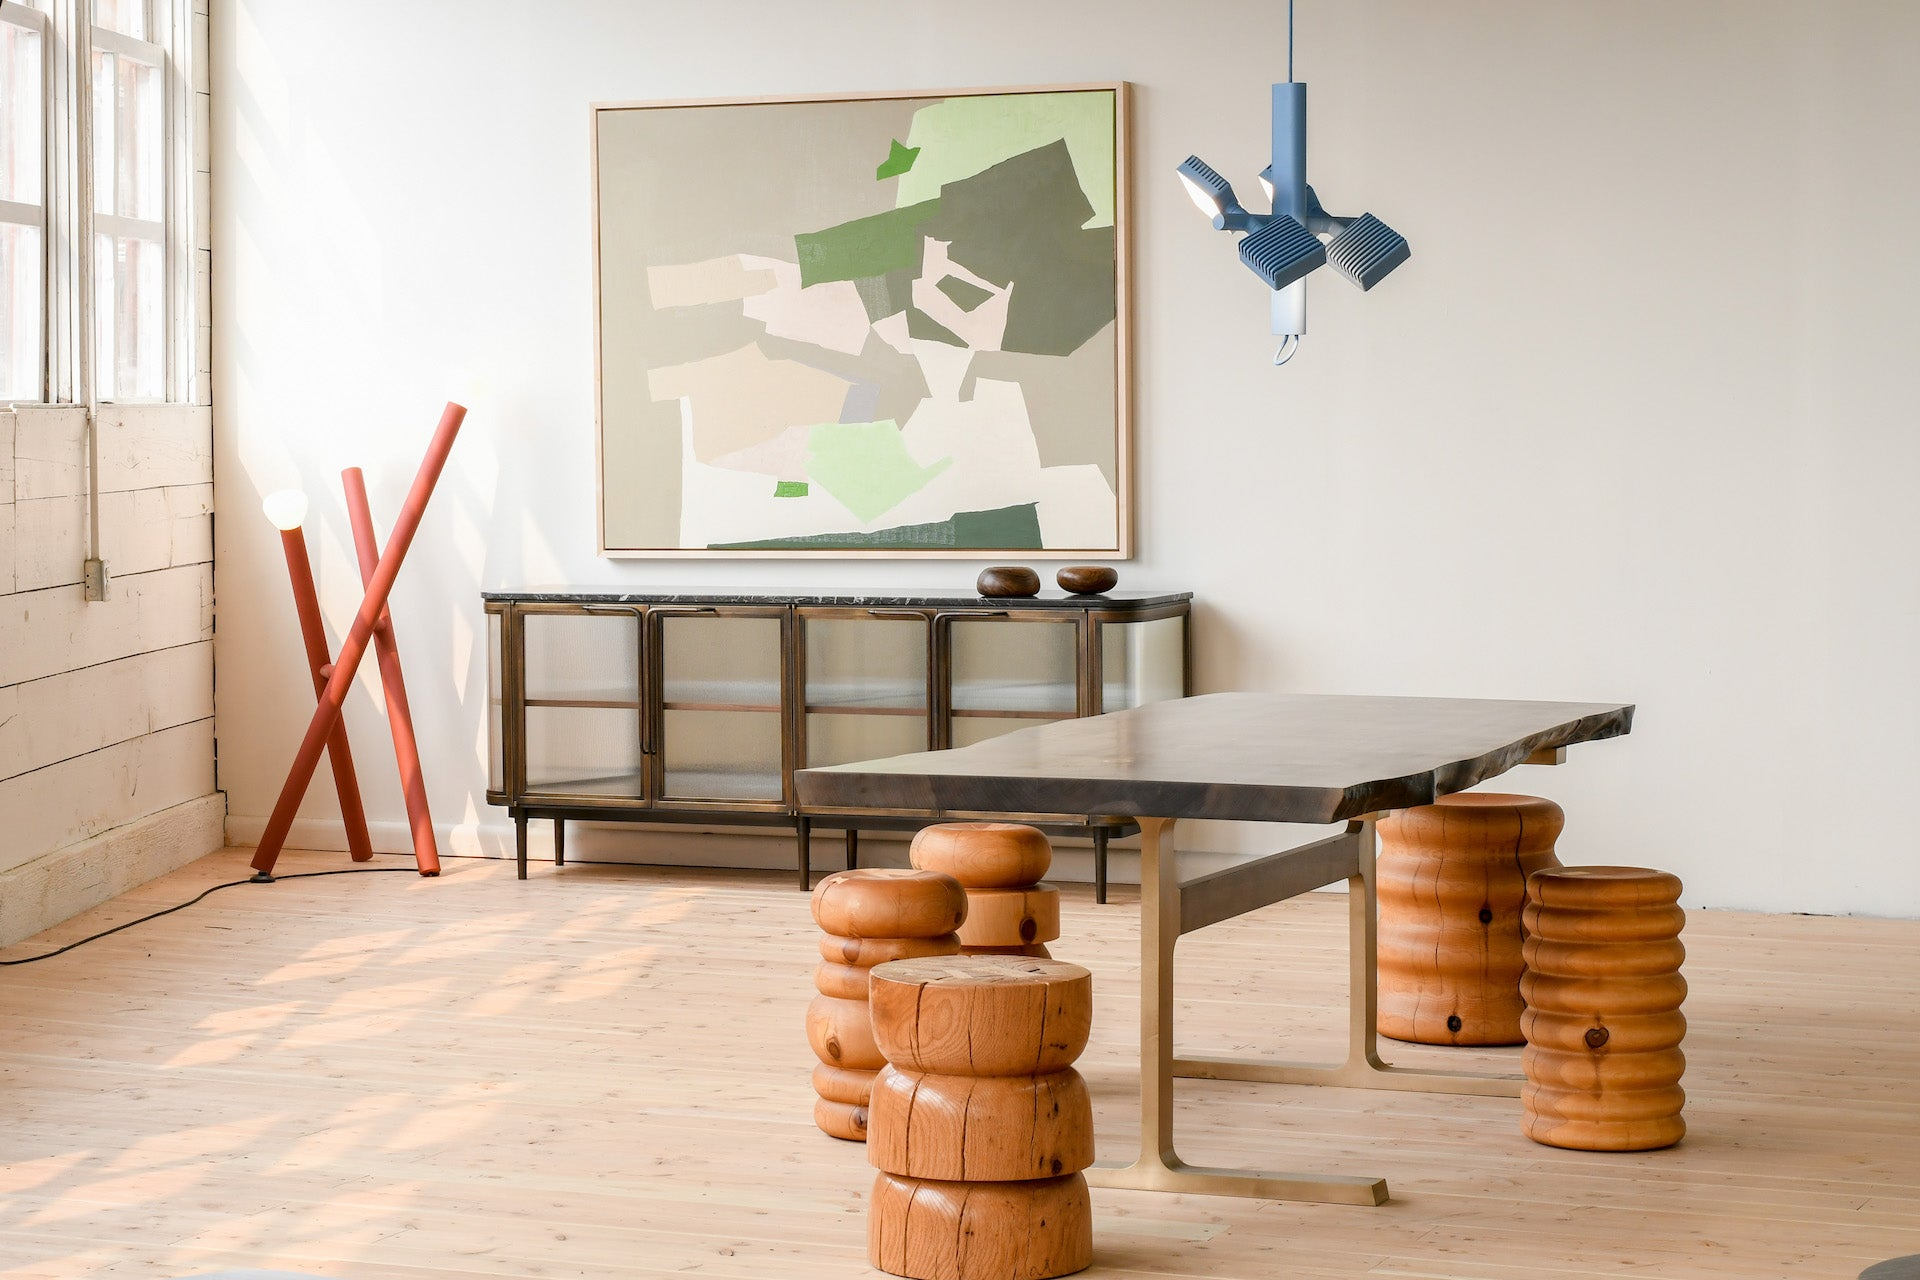 """Martin's Joinery Table with Dan John Anderson Stools, Lambert et Fils Lighting, and New Format Studio Credenza at Alpenglow Projects. """"All of these designers I have met on the fair circuits since my career began, and I am honored to be representing them in my new gallery space,"""" Martin says. Photo © Jeff Martin"""